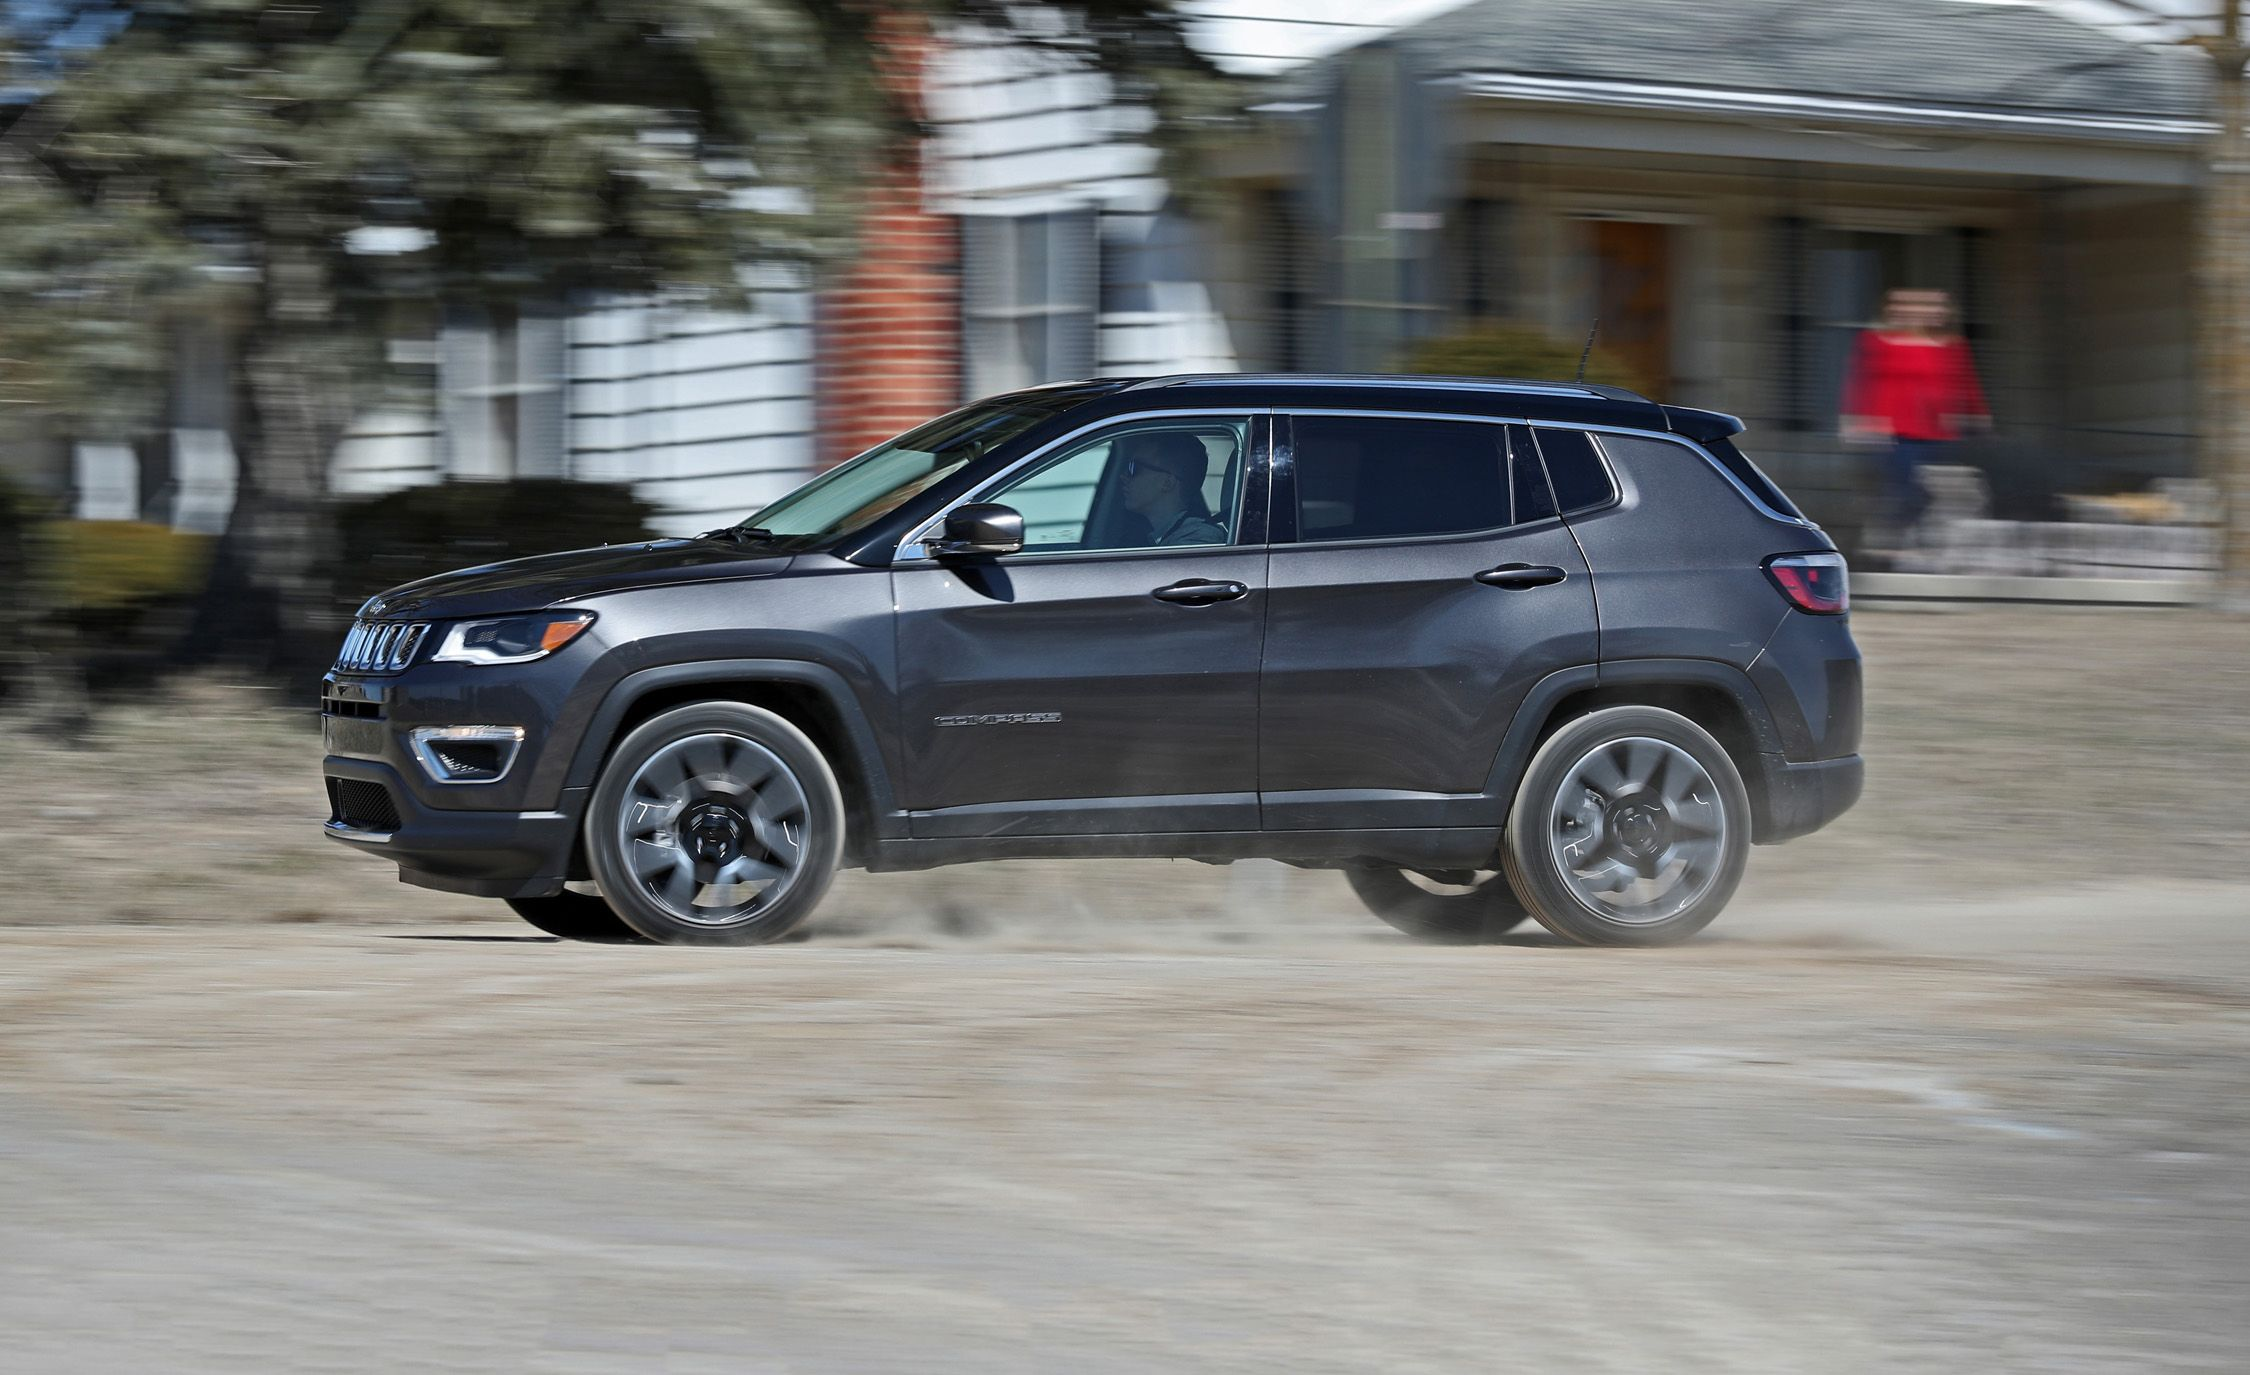 2018 Jeep pass FWD Automatic Test Review